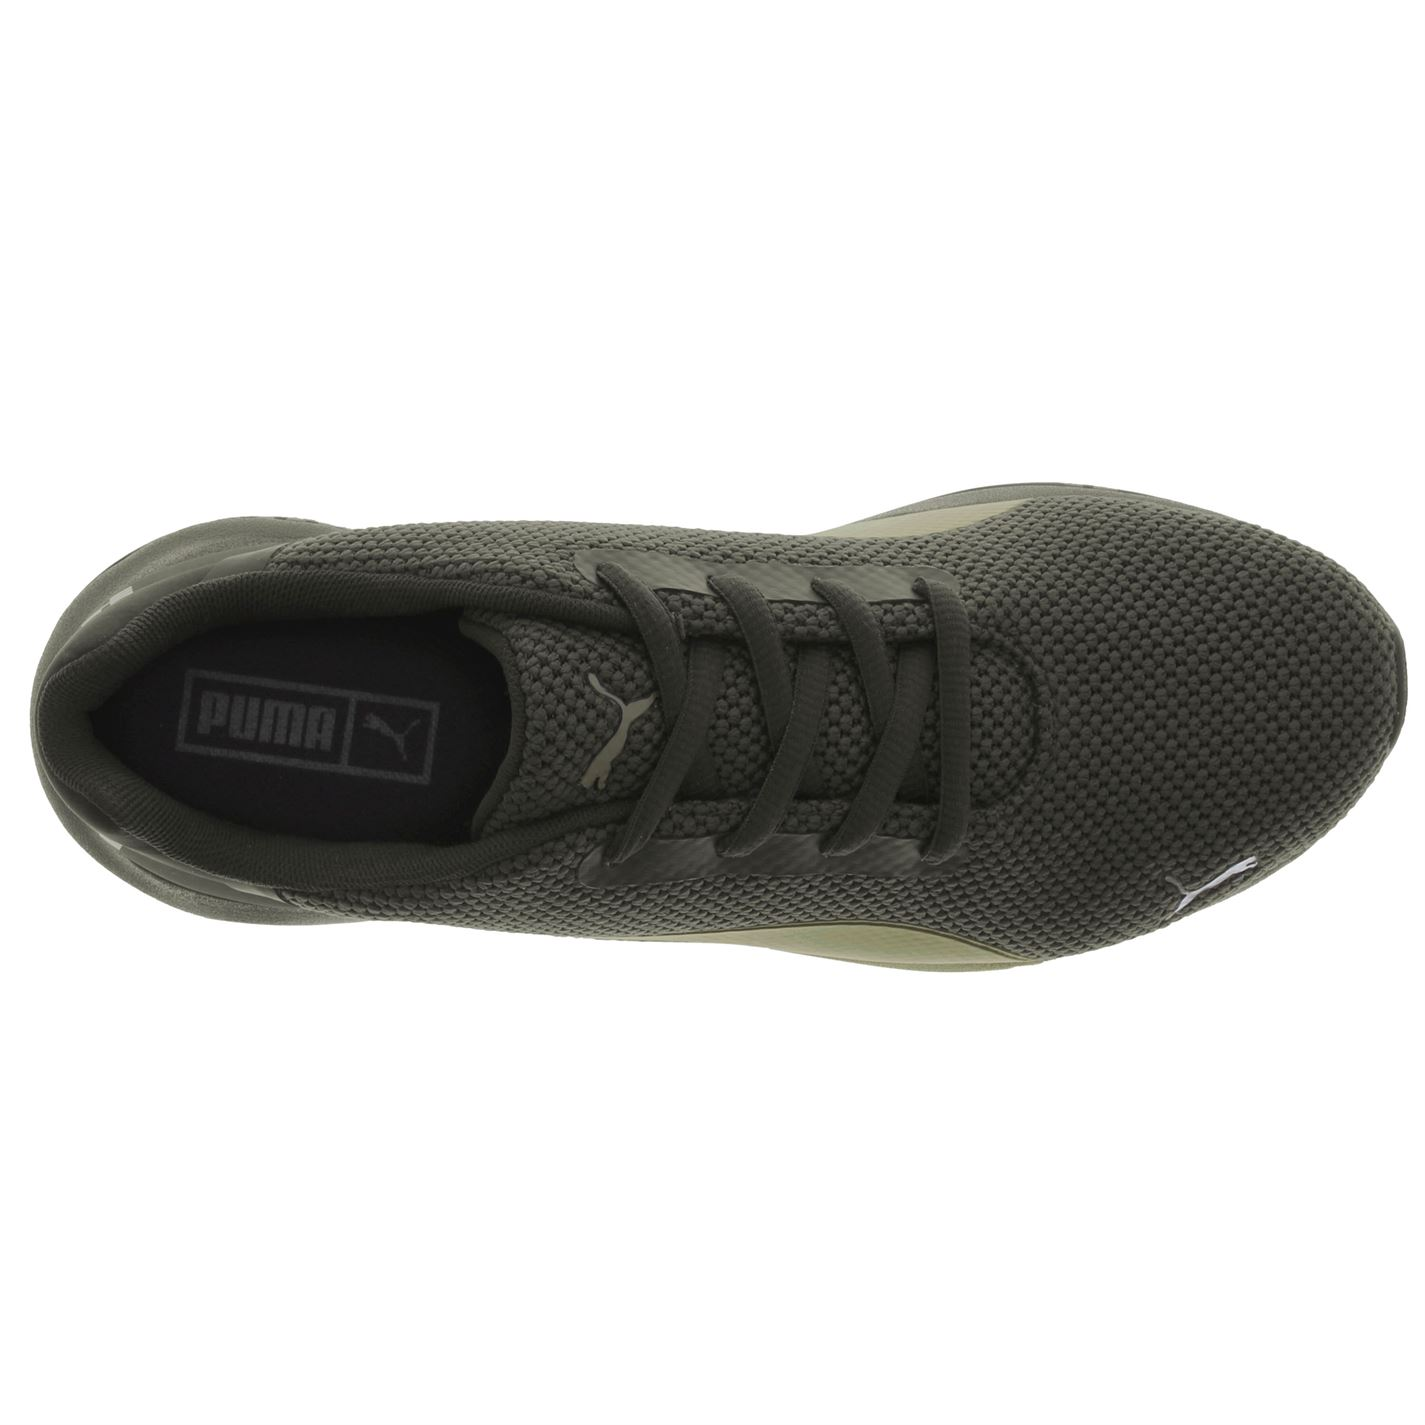 Puma Mens Mens Mens Cell Ultimate Trainers Runners Lace Up Padded Ankle Collar Tongue 858742